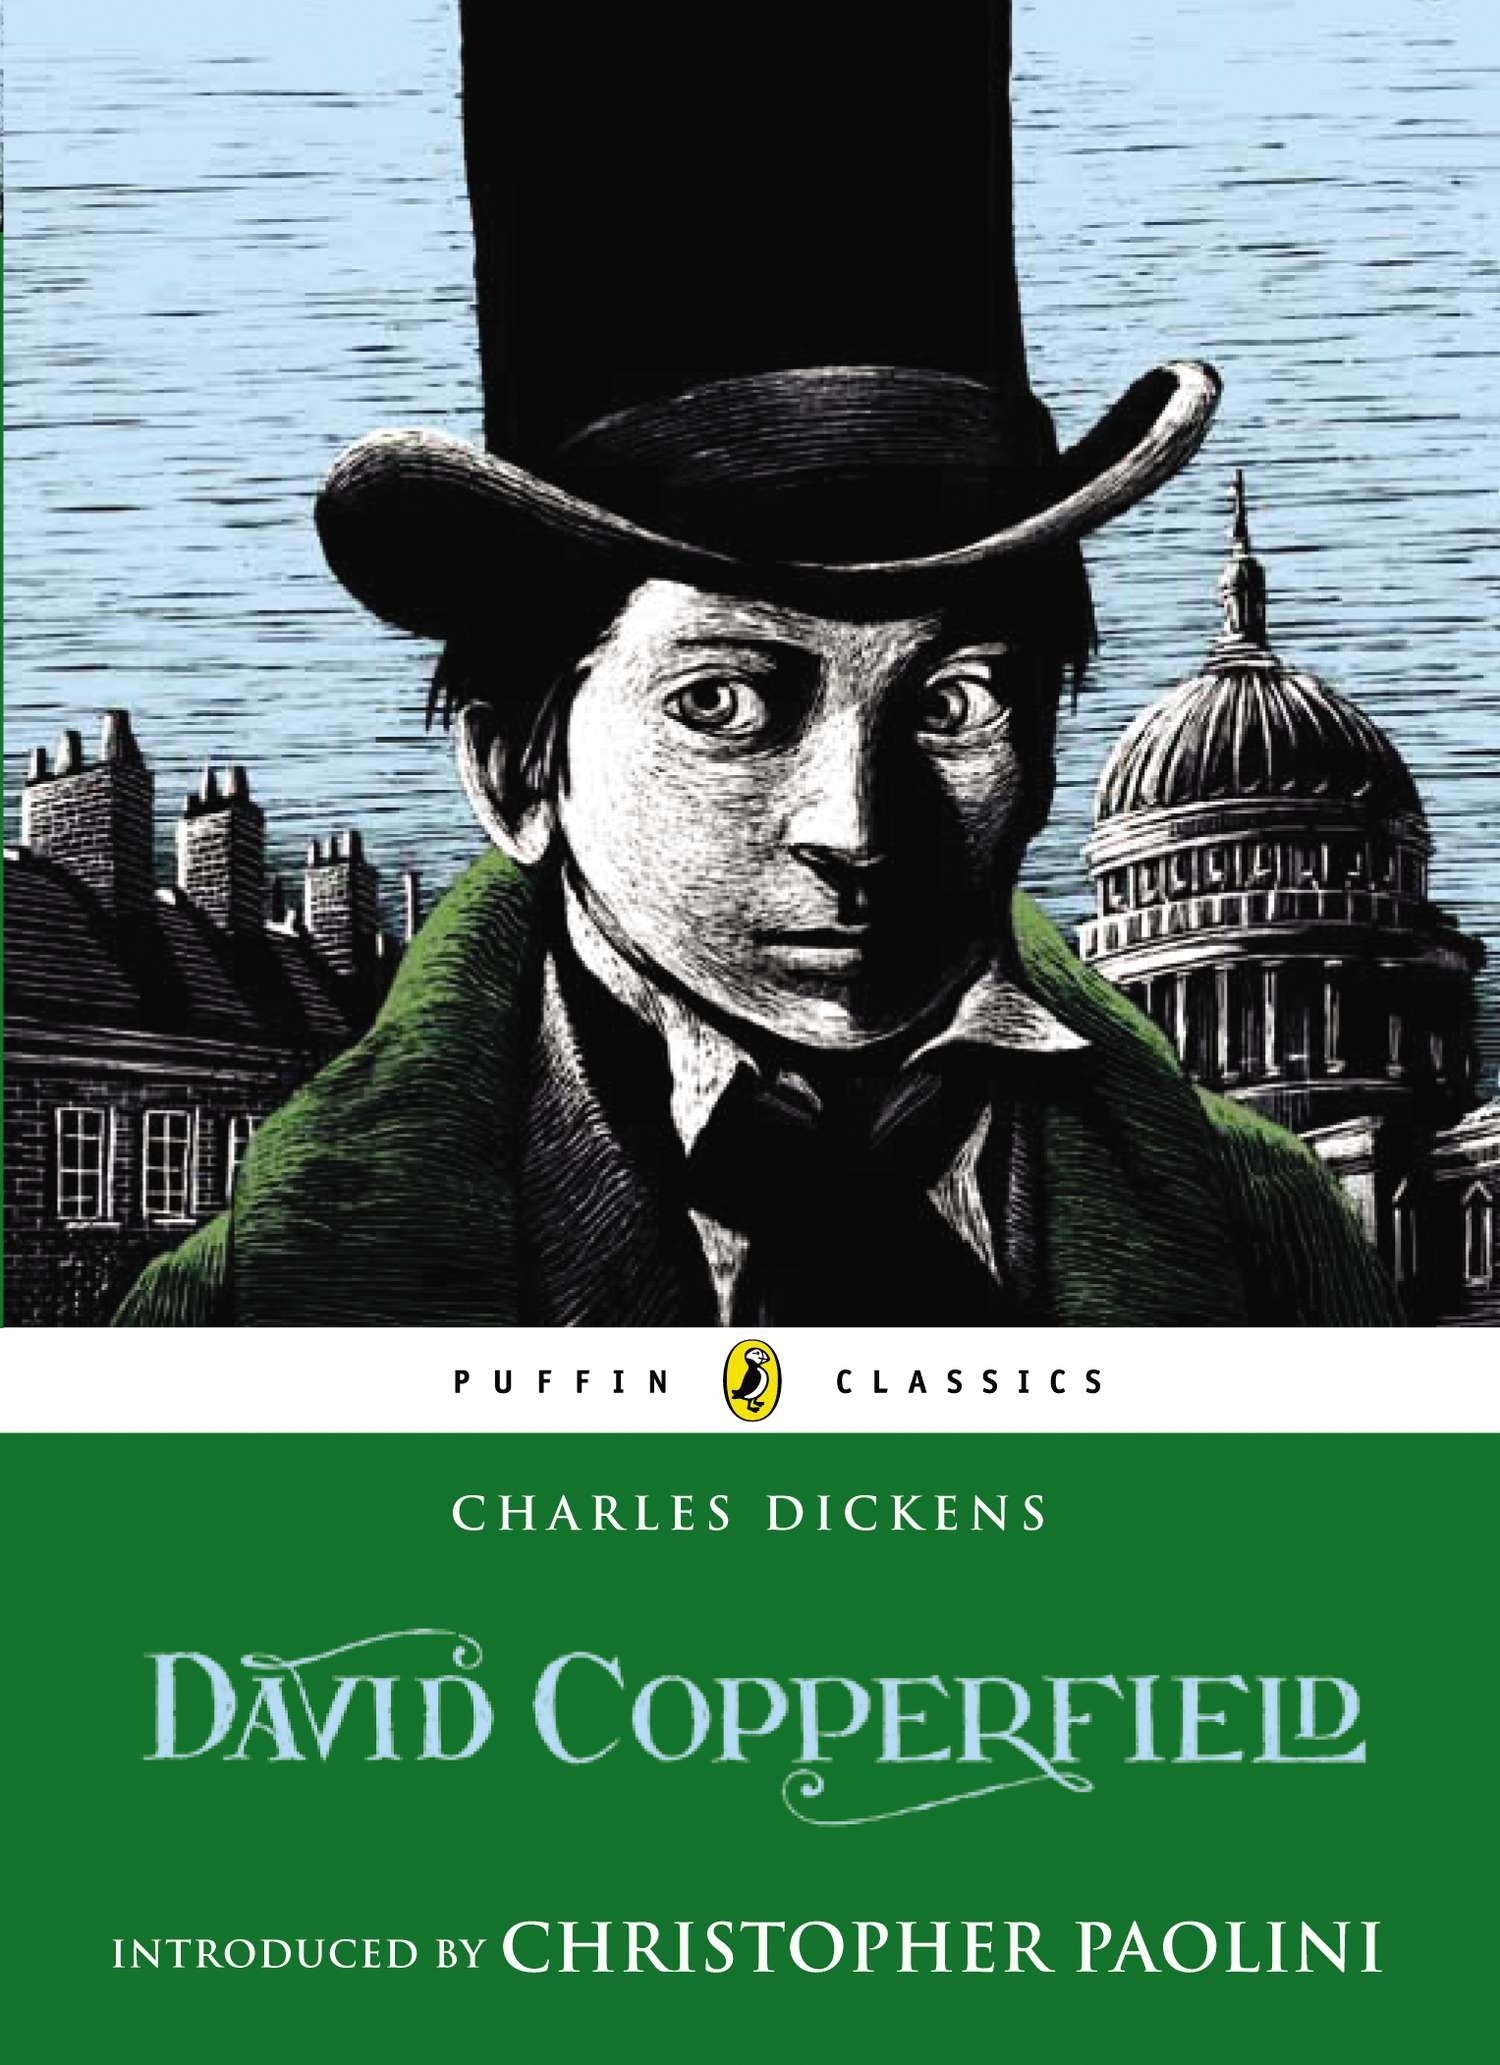 david copperfield very short summary david copperfield penguin  david copperfield penguin books david copperfield